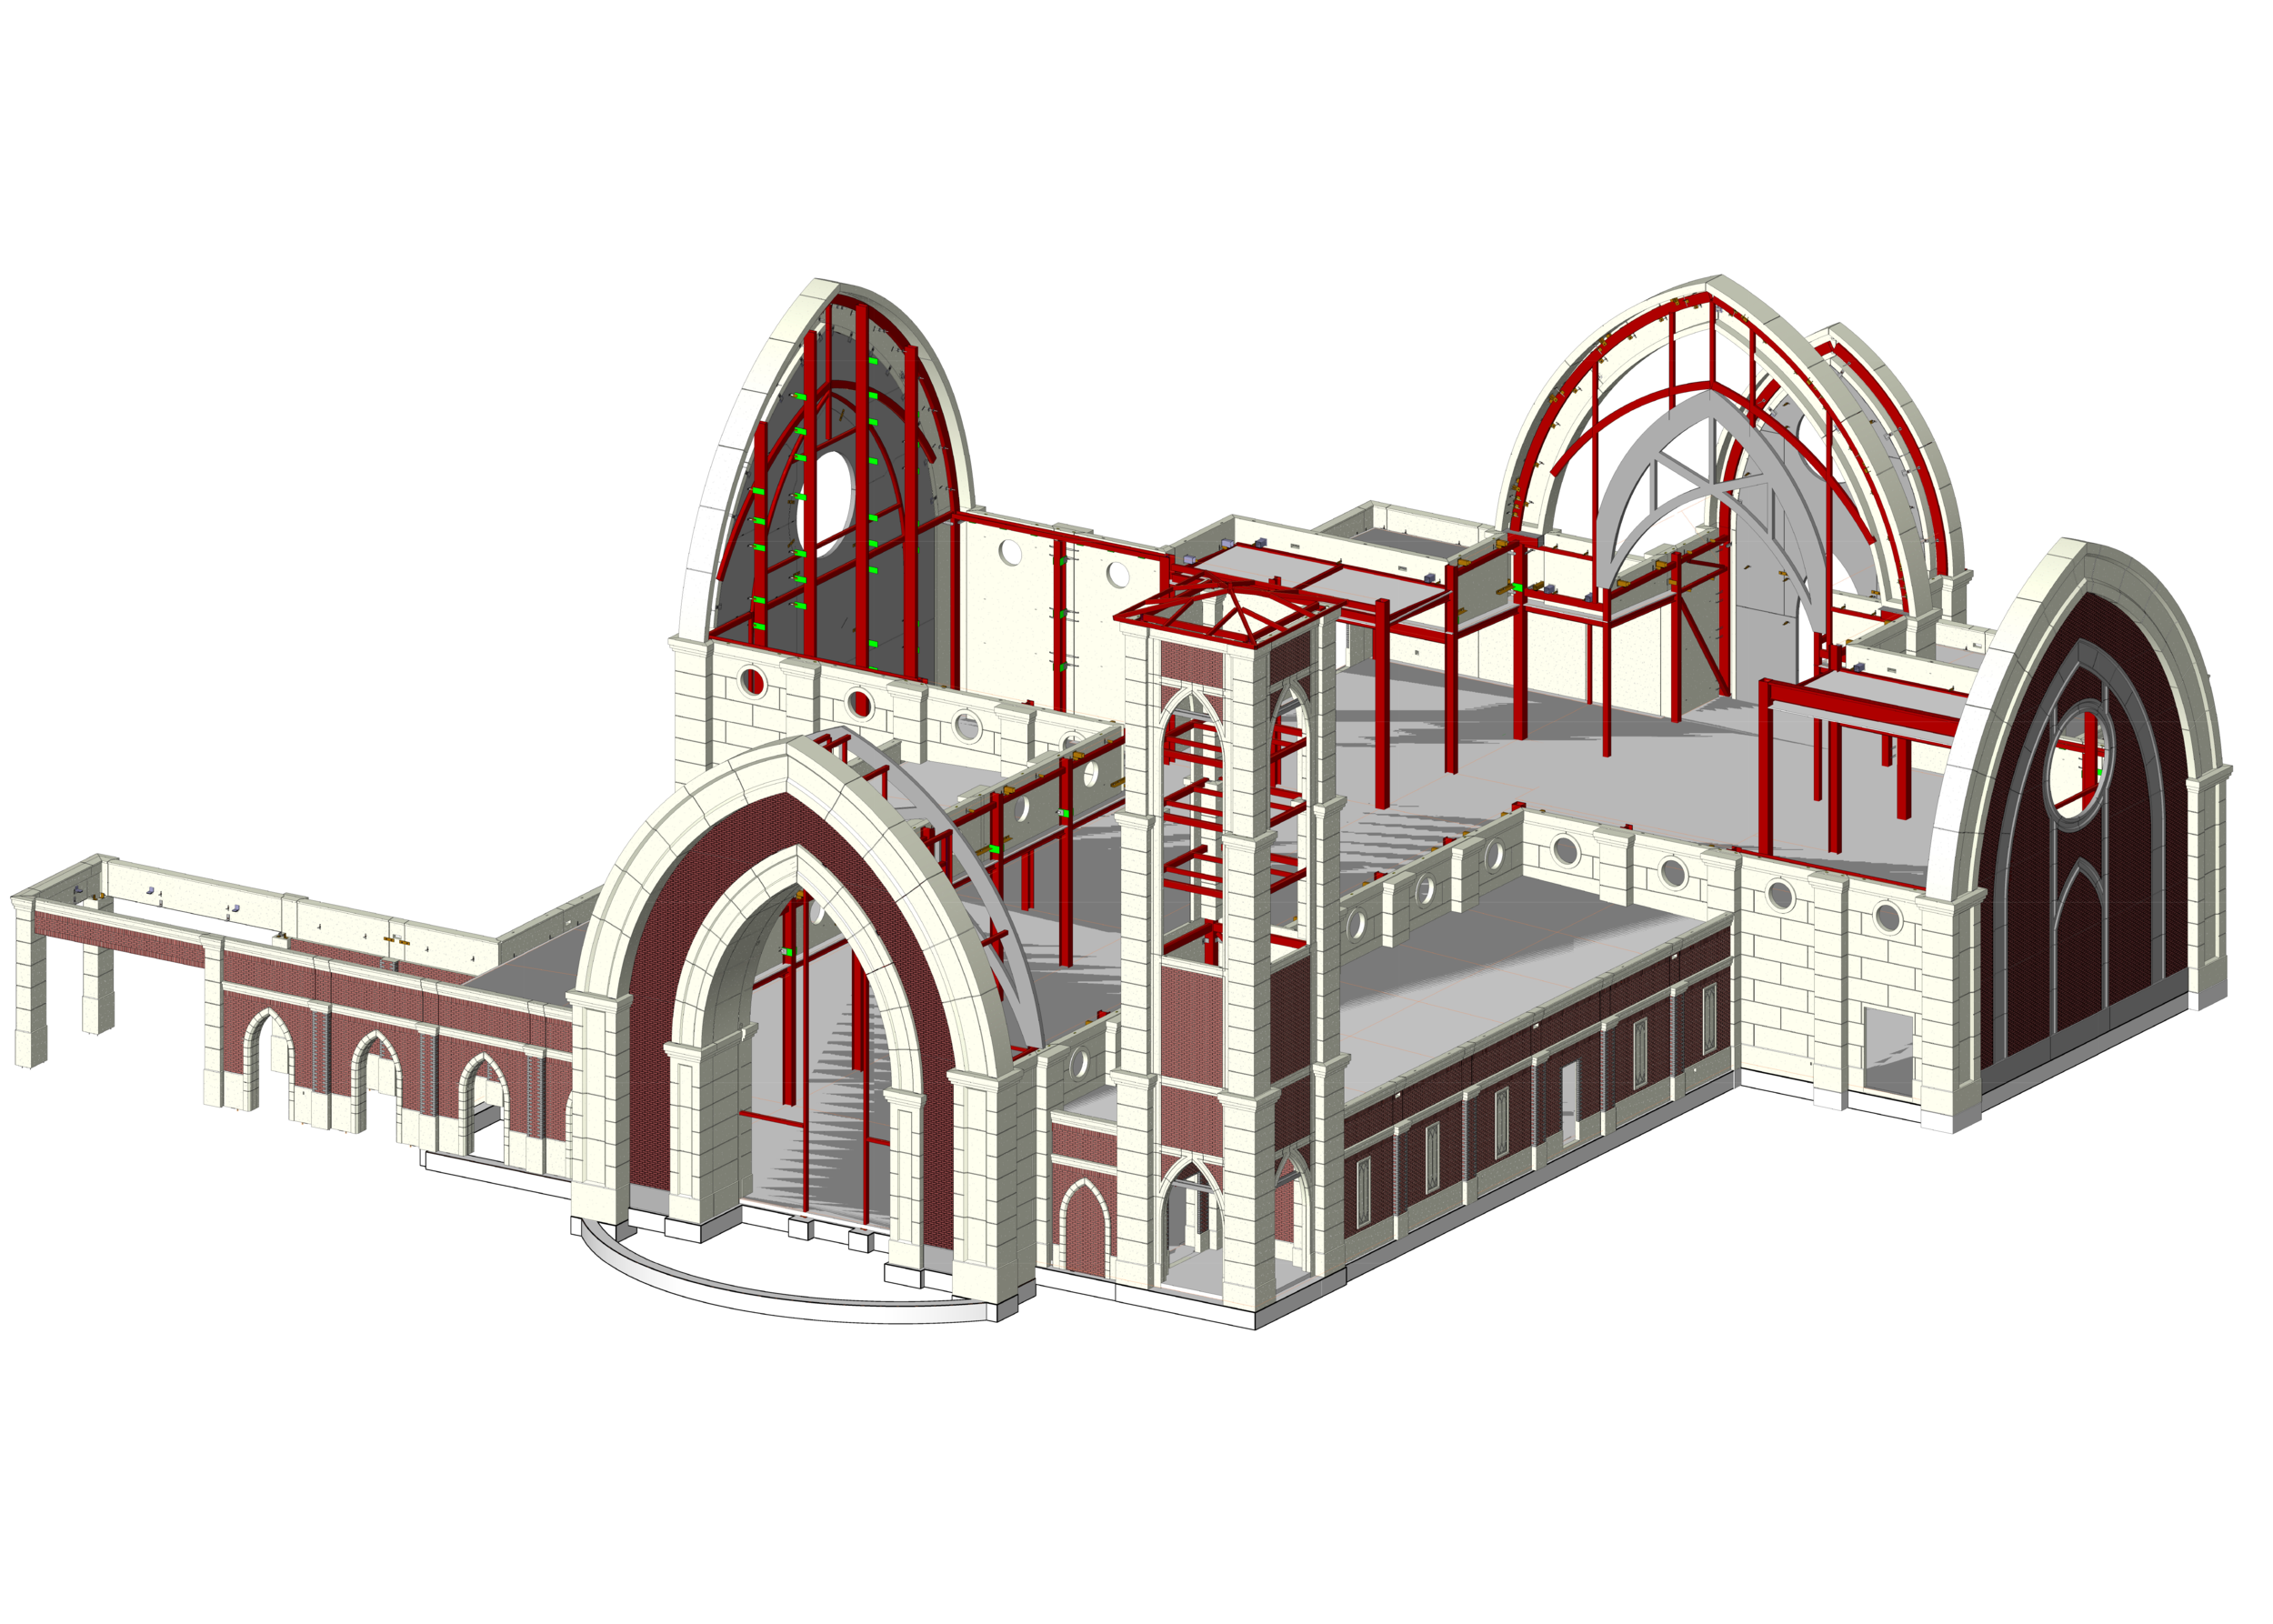 St George Catholic Church Drawings-2.png